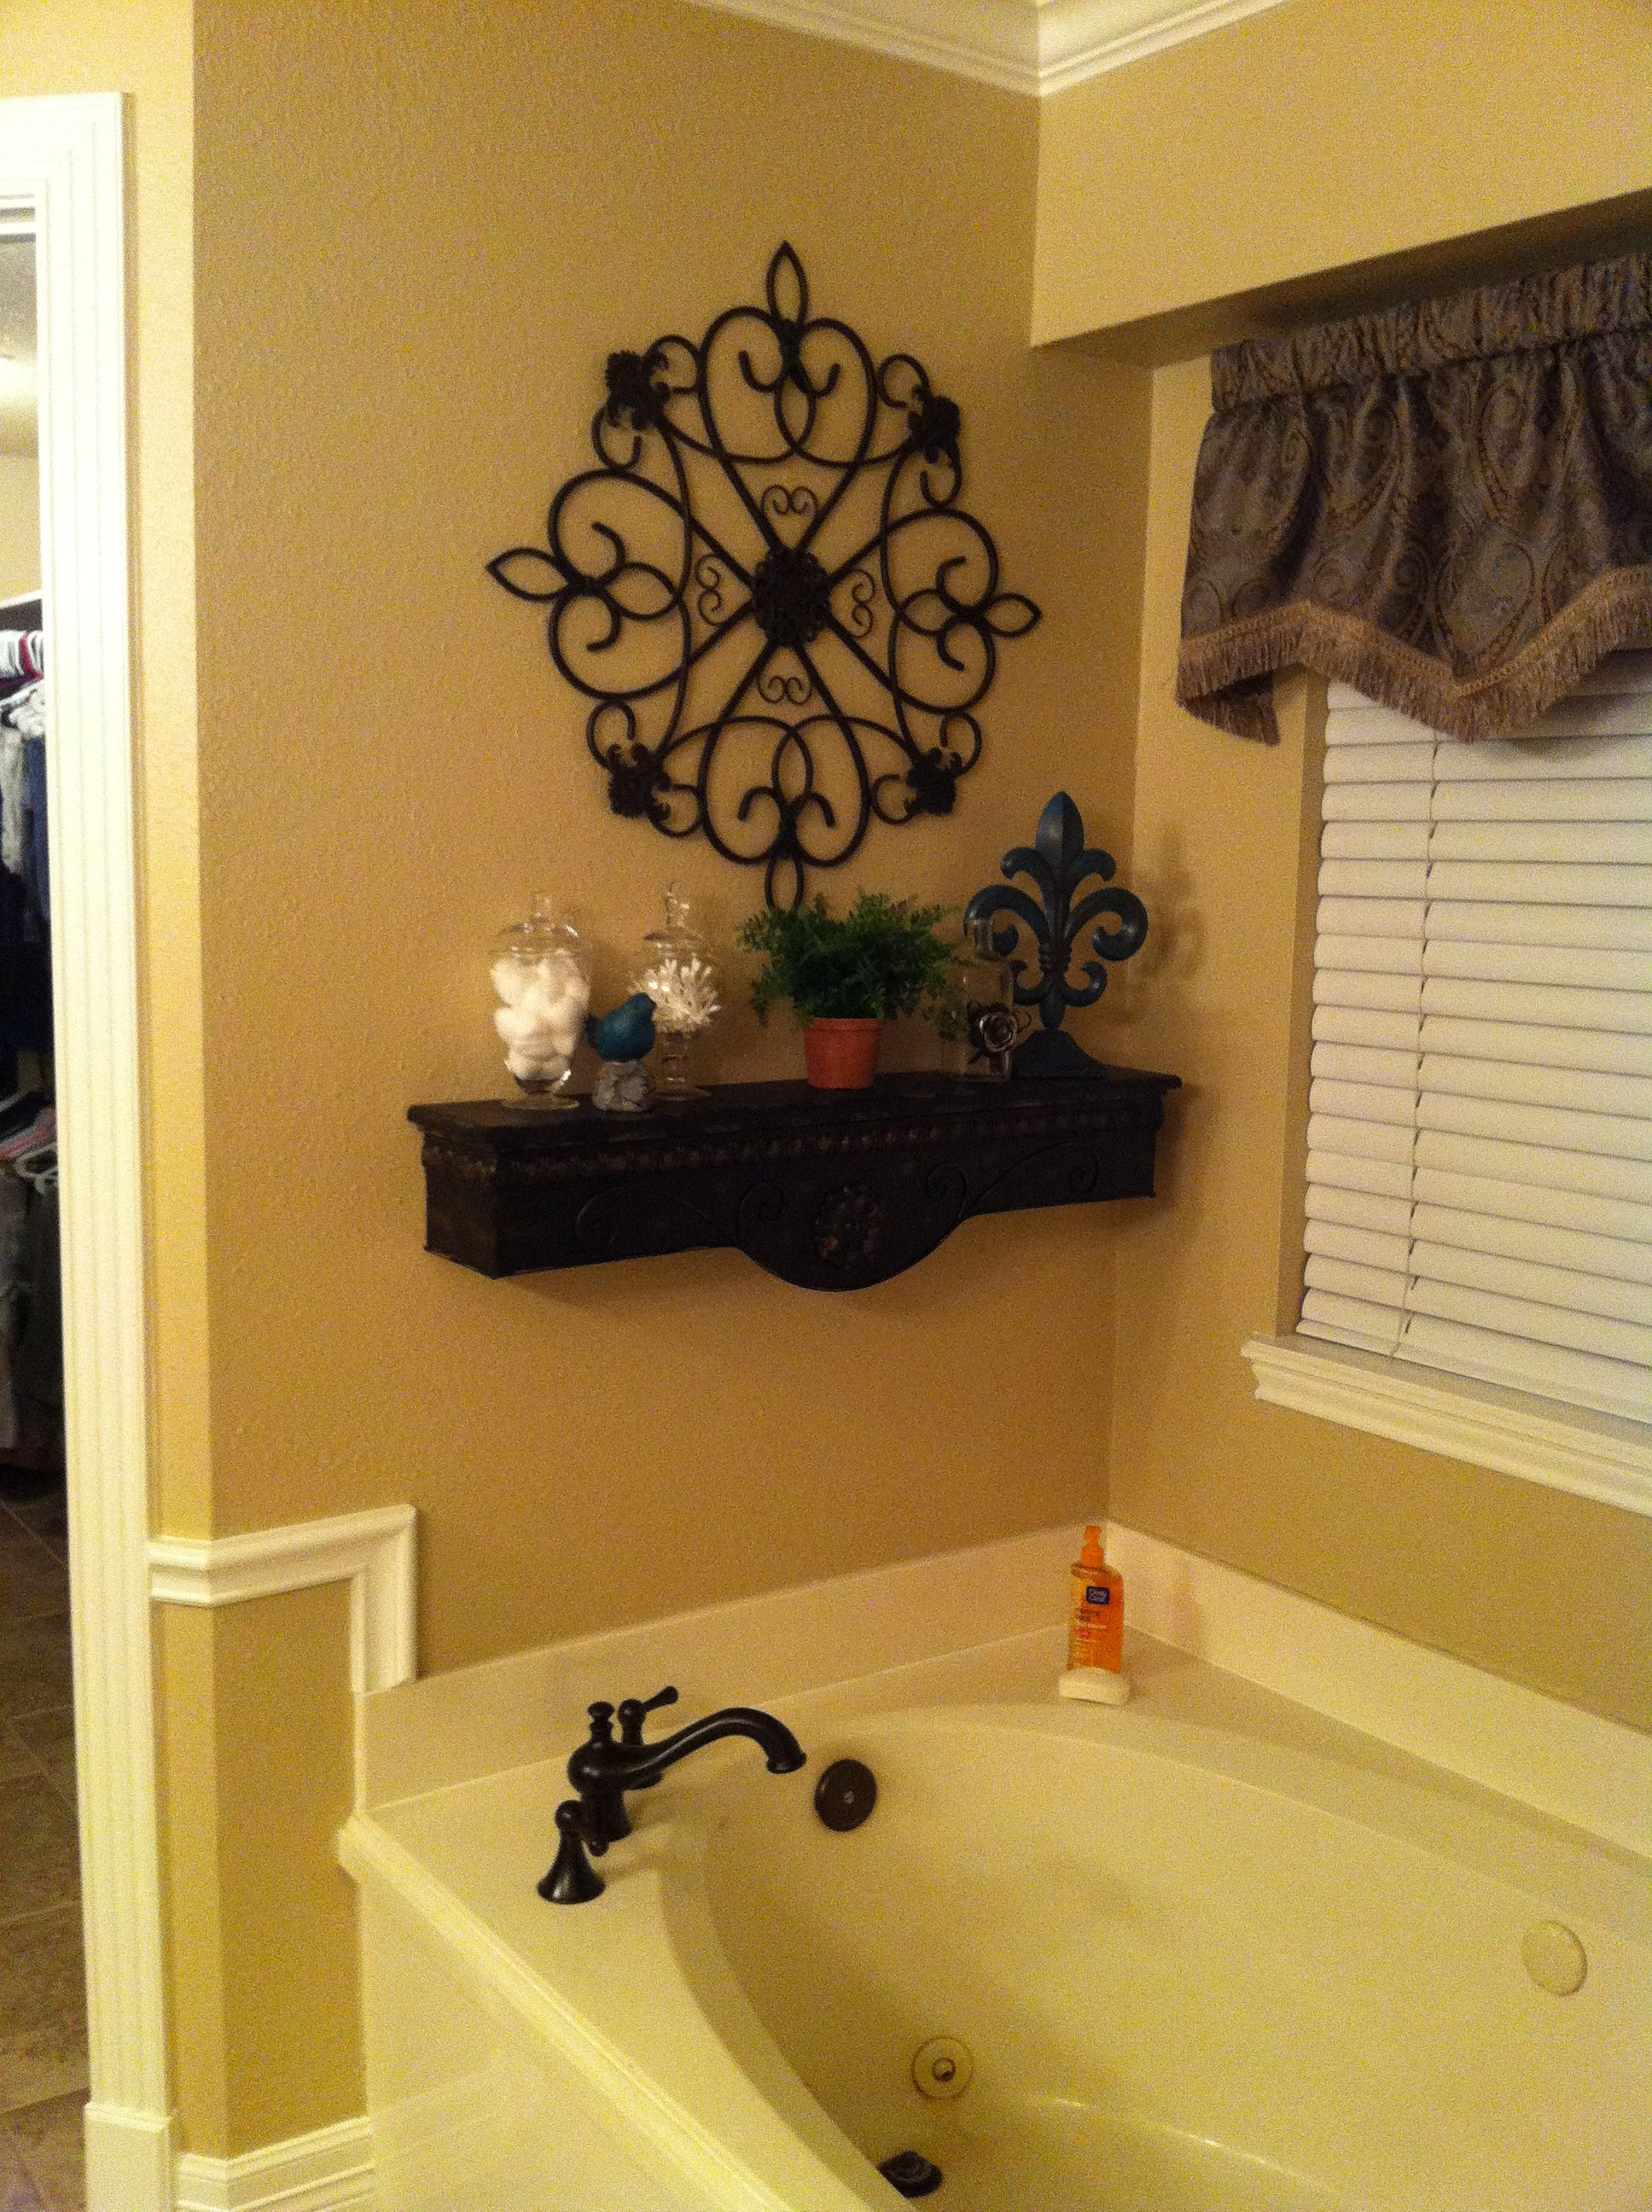 decorative shelf above bath tub master bath in 2019 bathtub decor bath decor home decor. Black Bedroom Furniture Sets. Home Design Ideas